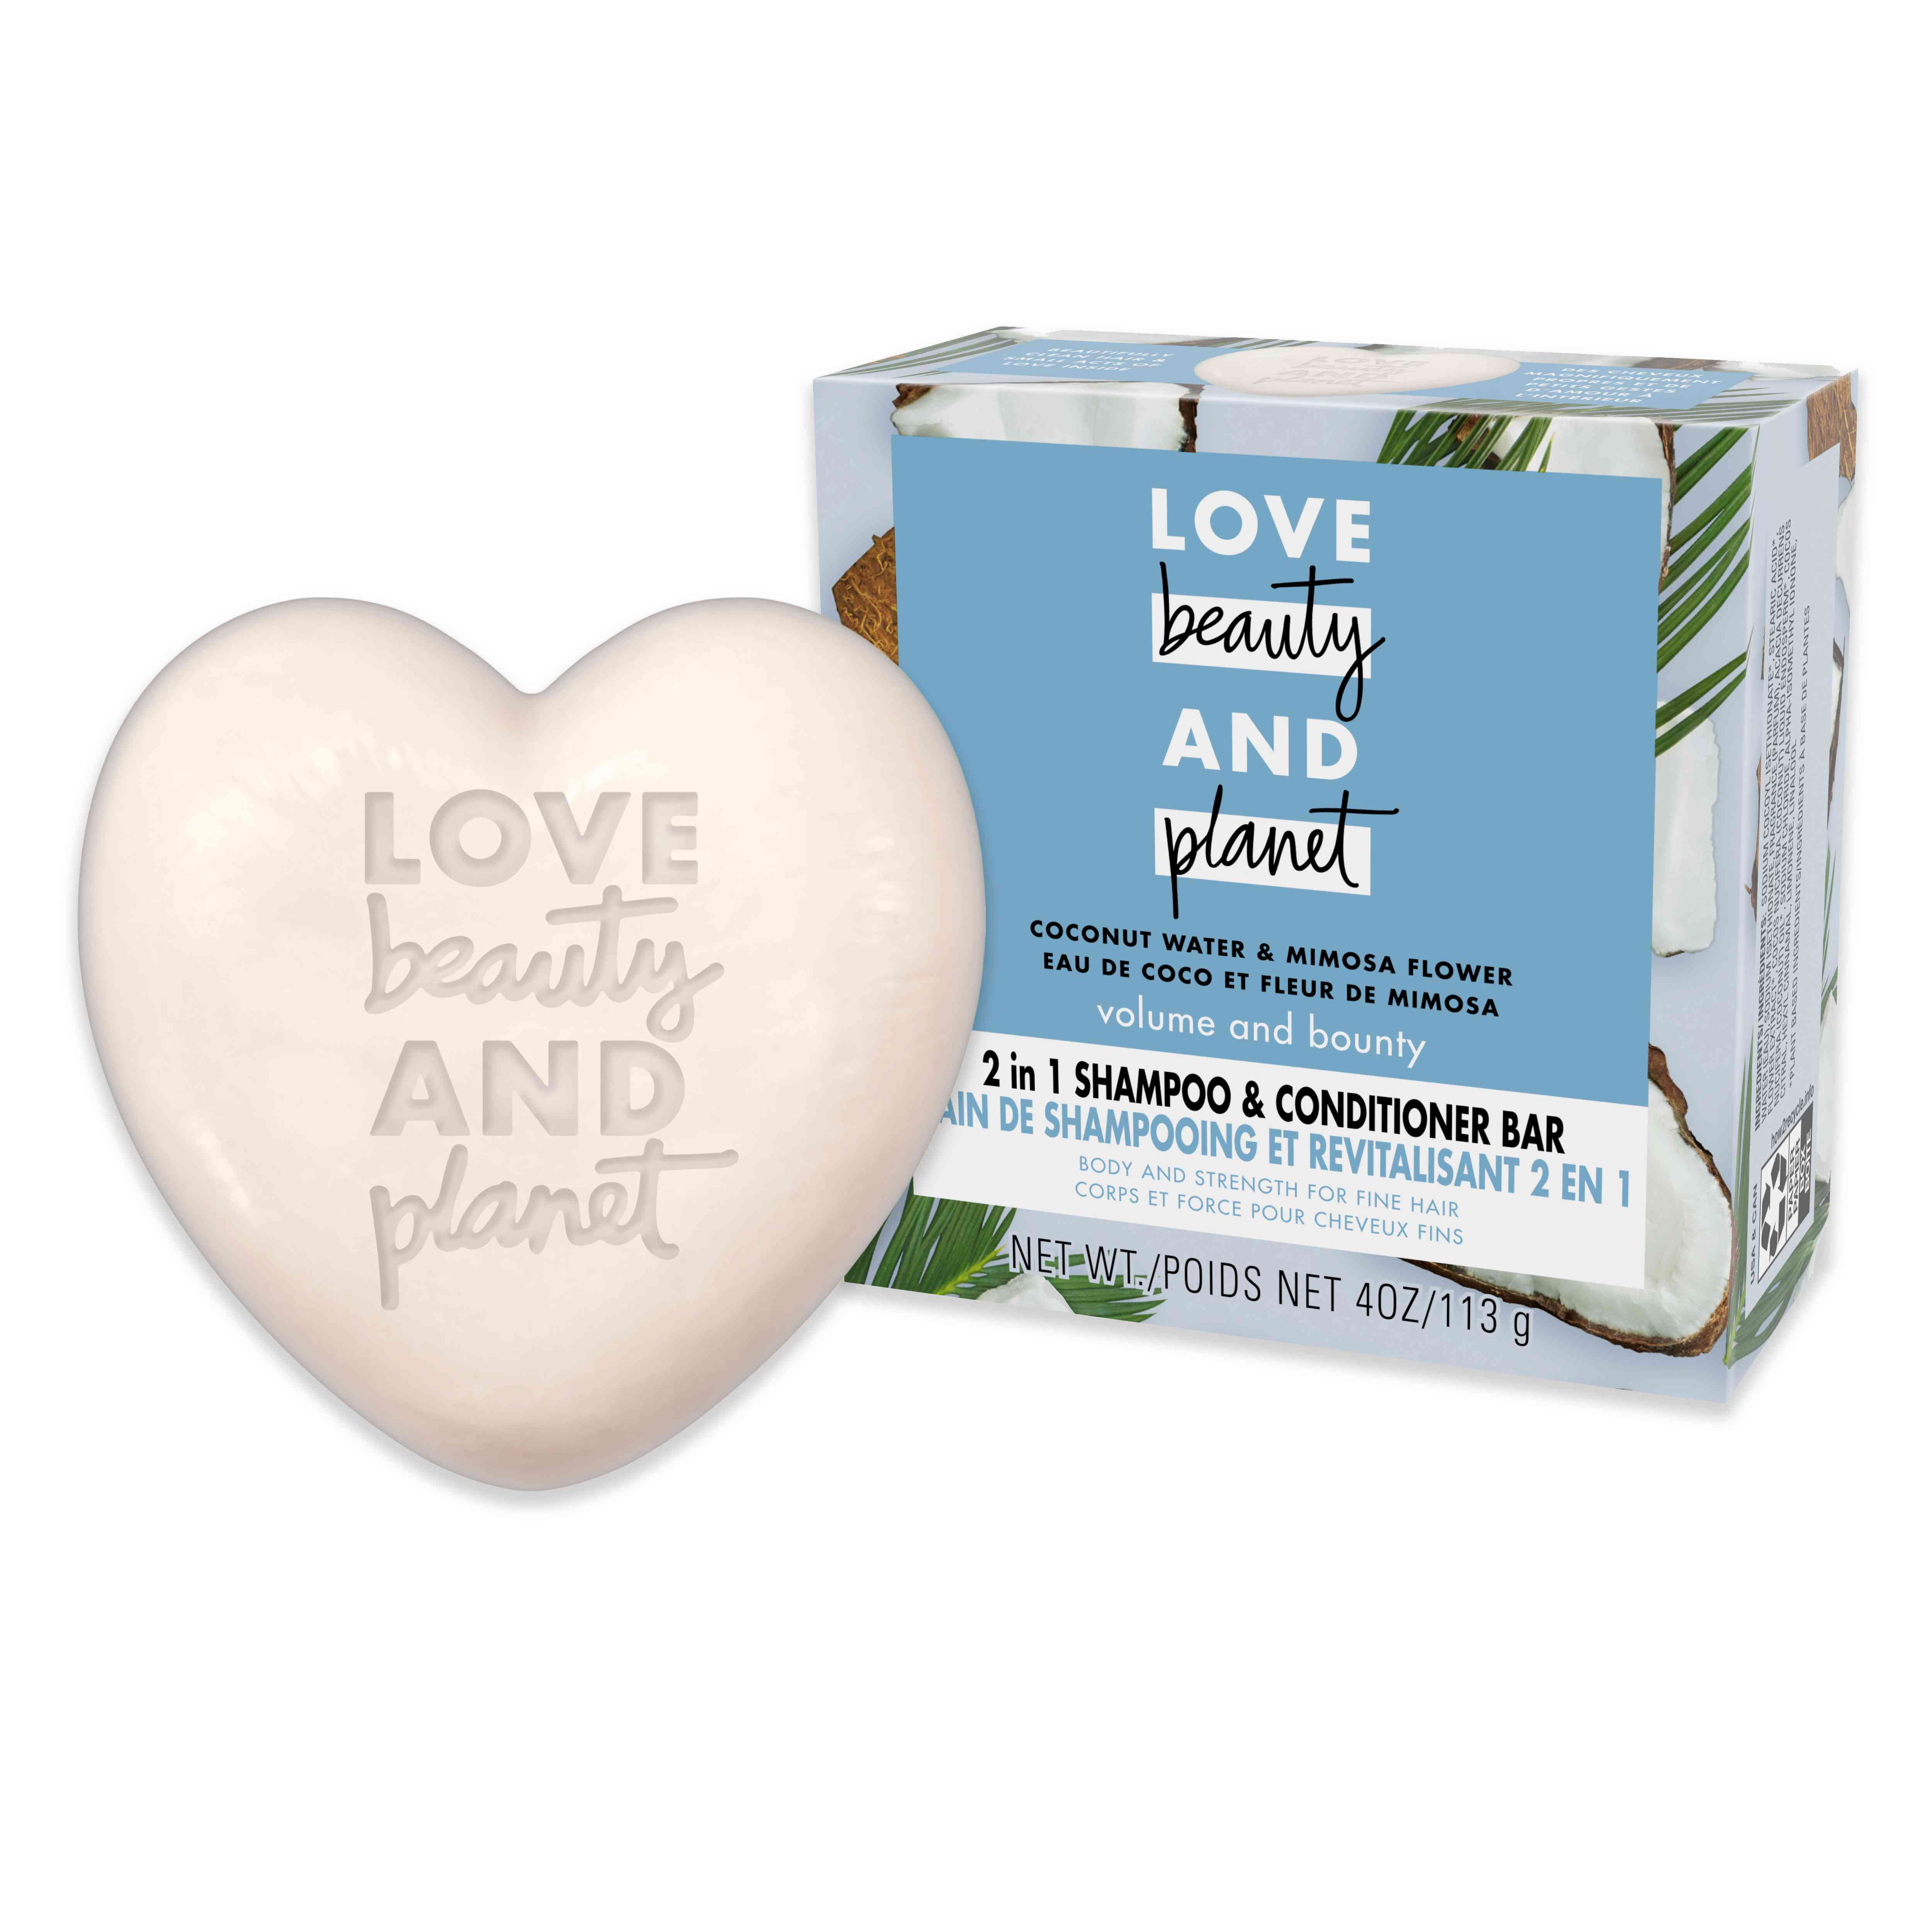 Love Beauty and Planet 2 in 1 Shampoo and Conditioner Bar